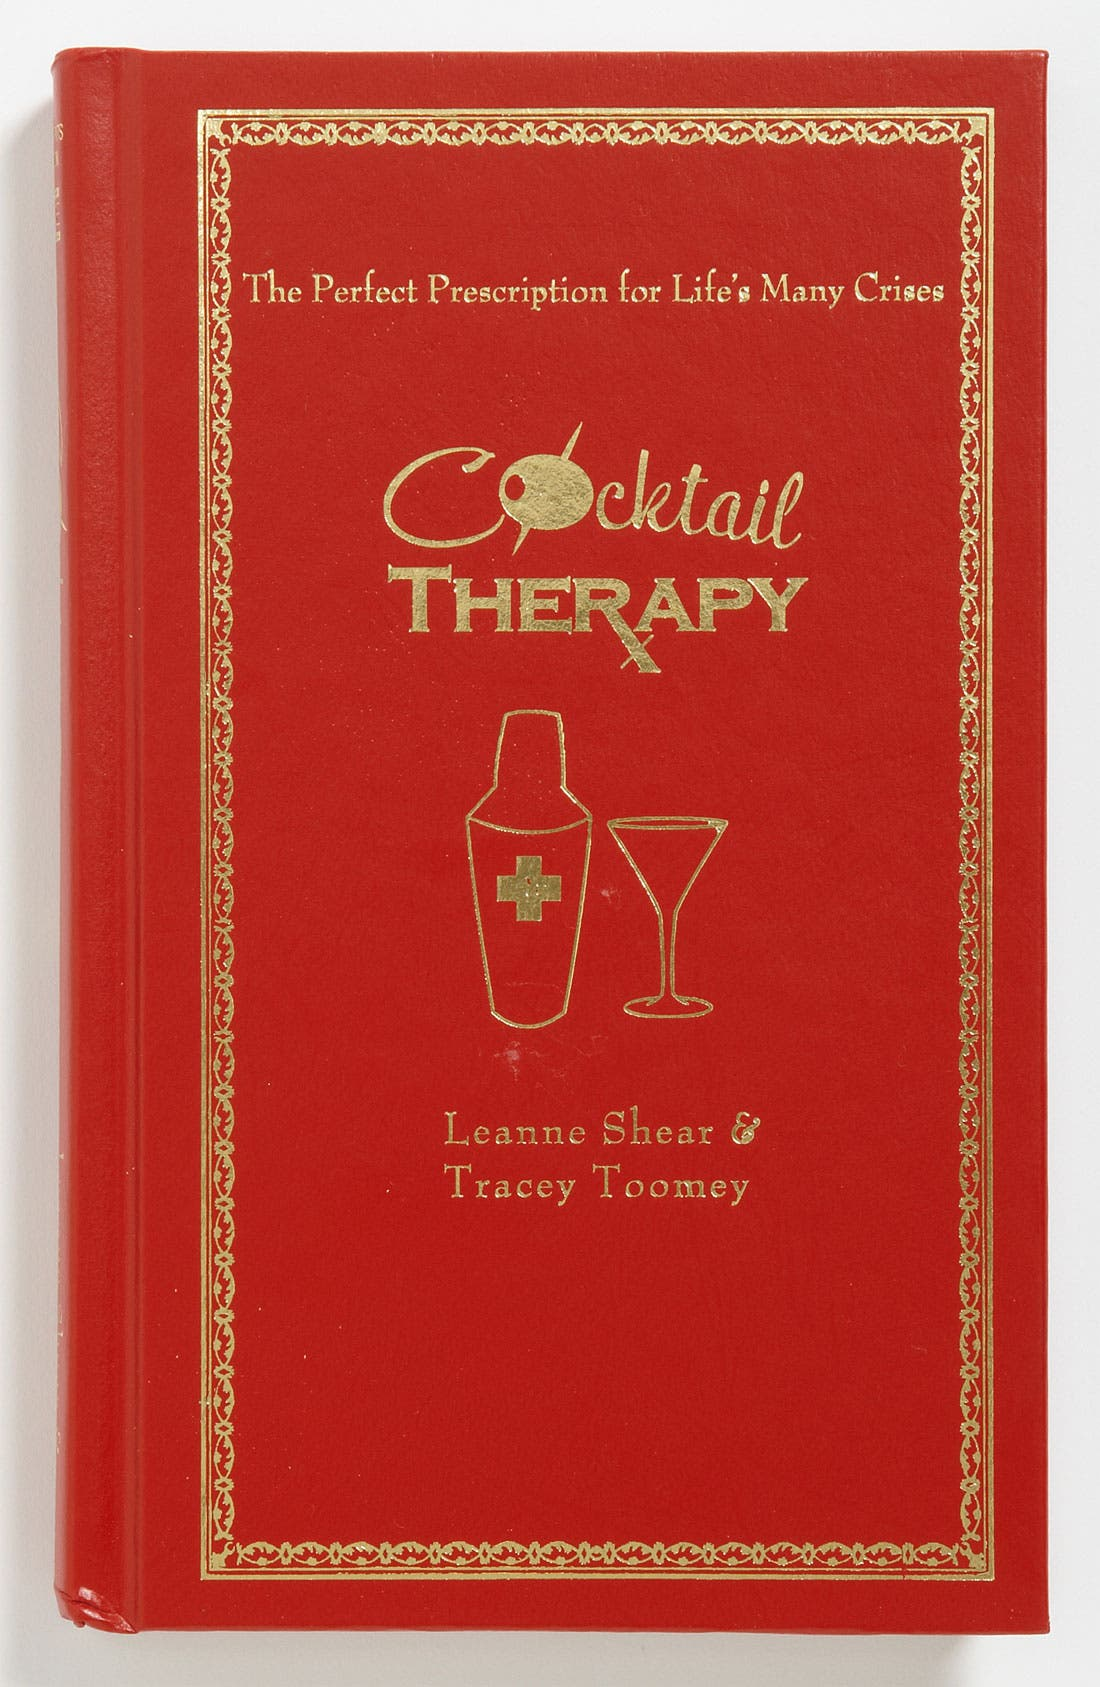 'Cocktail Therapy' Guide Book,                             Main thumbnail 1, color,                             No Color